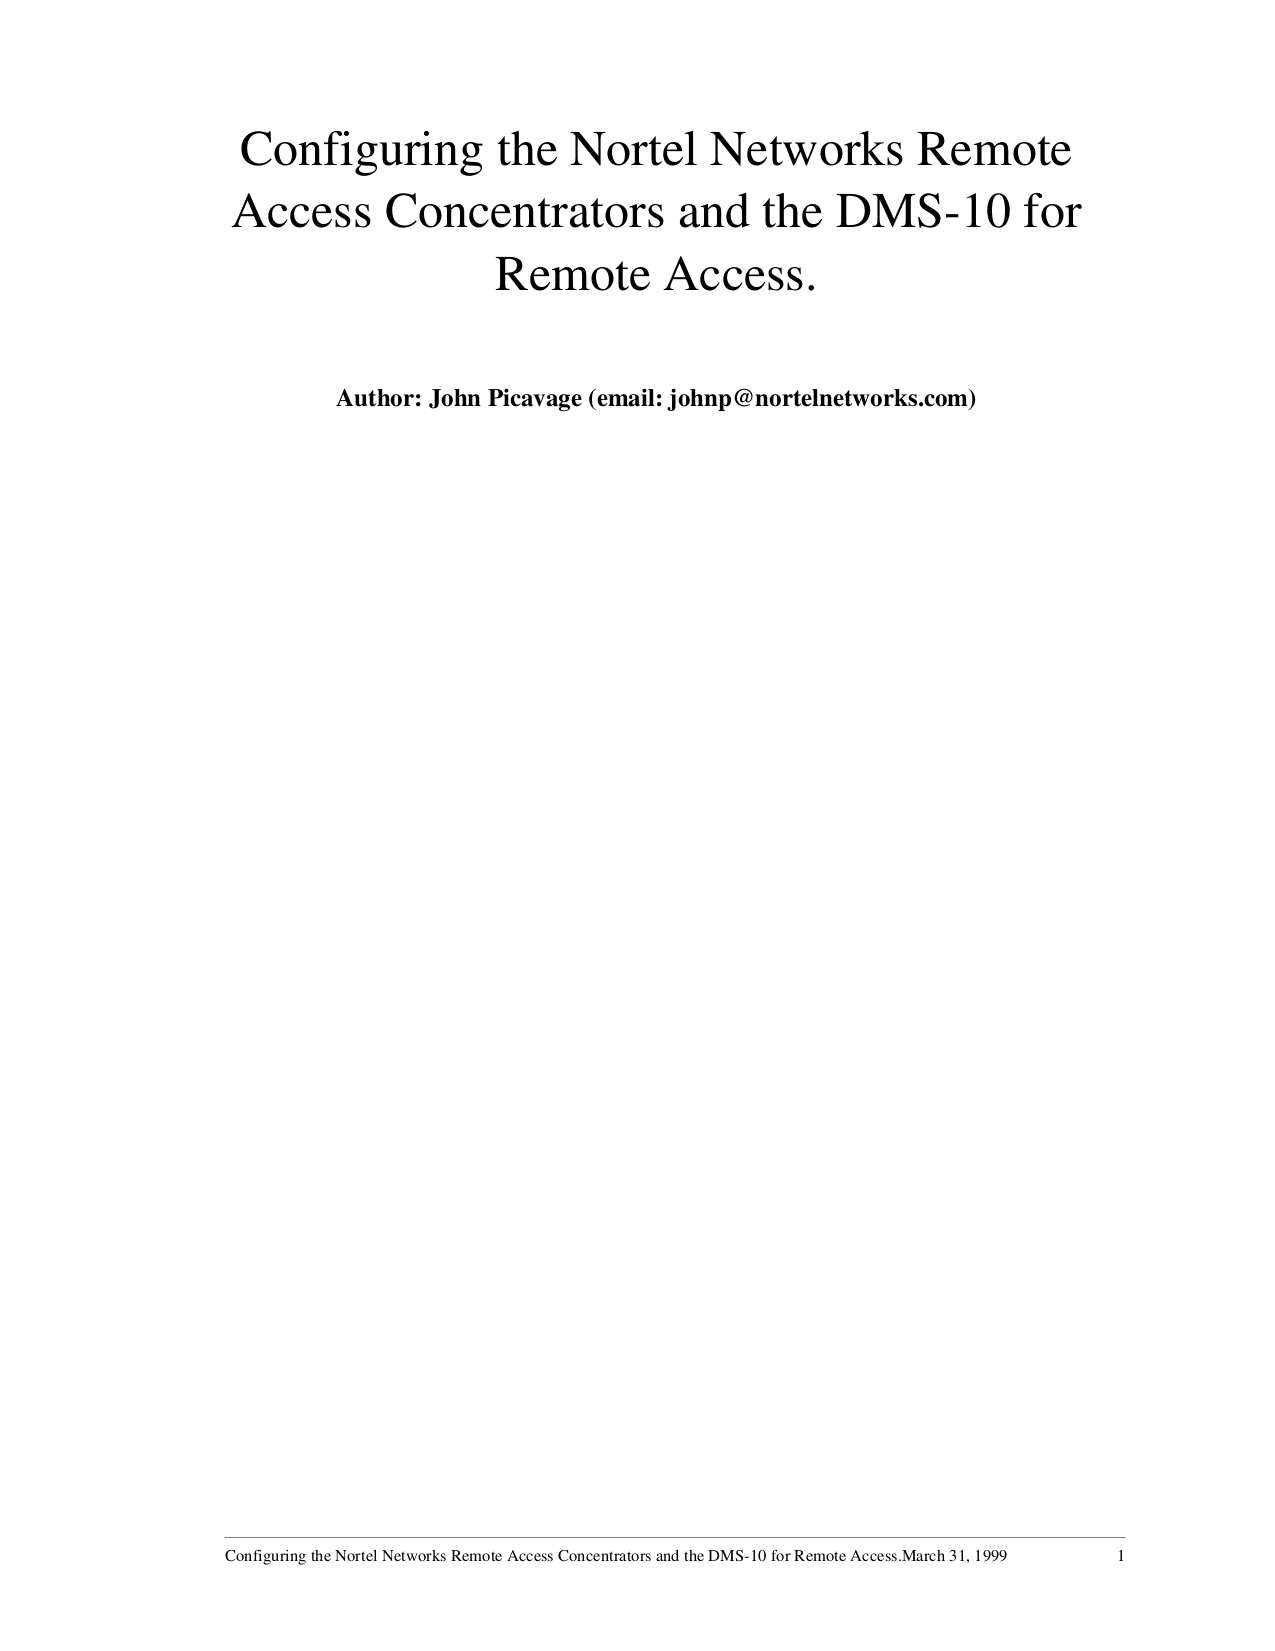 pdf for Nortel Switch DMS-10 manual